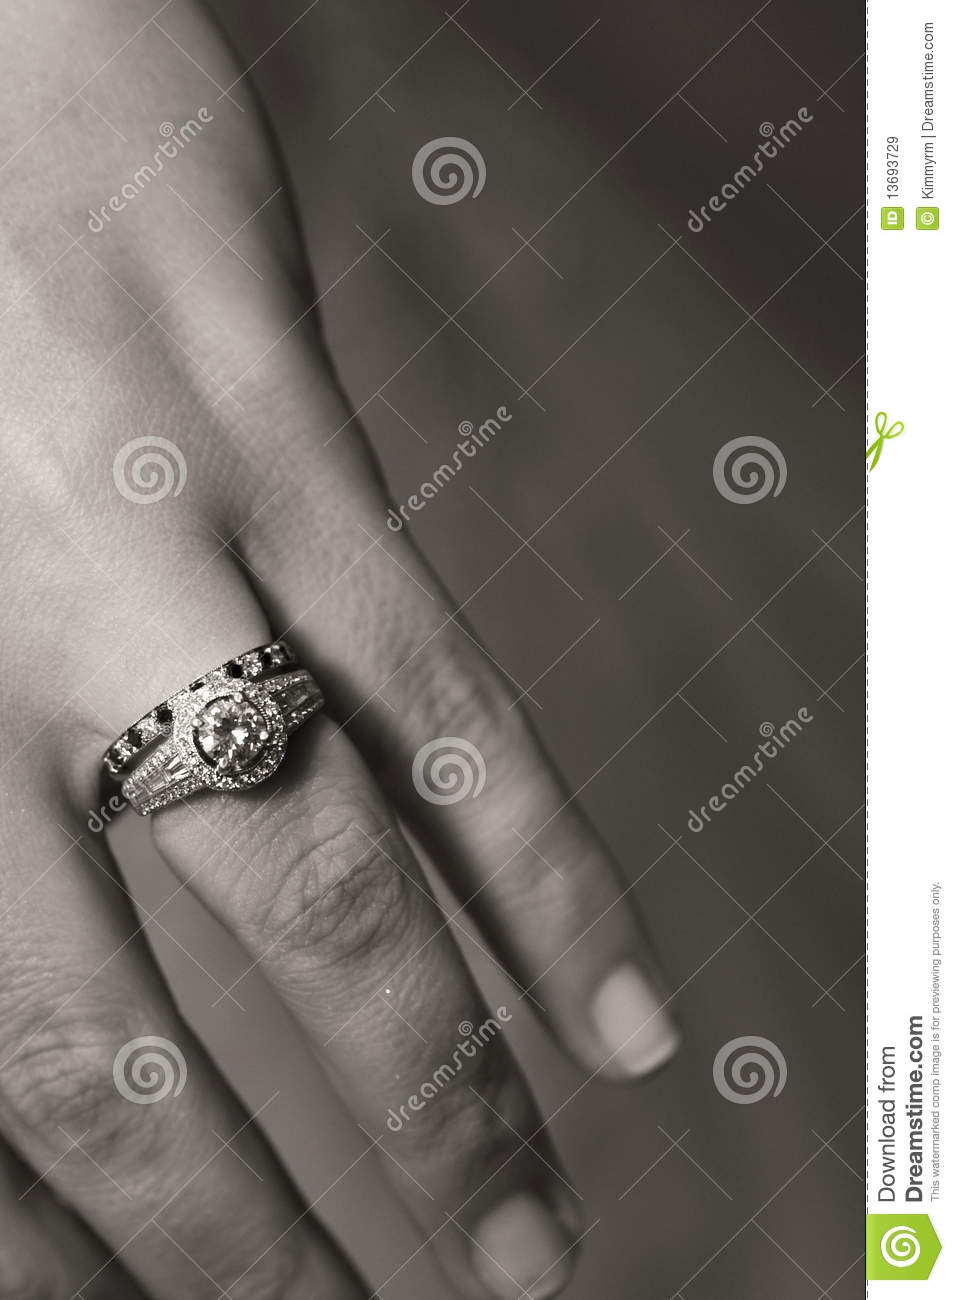 Engagement Ring Finger On A Woman's Hand Royalty Free ...